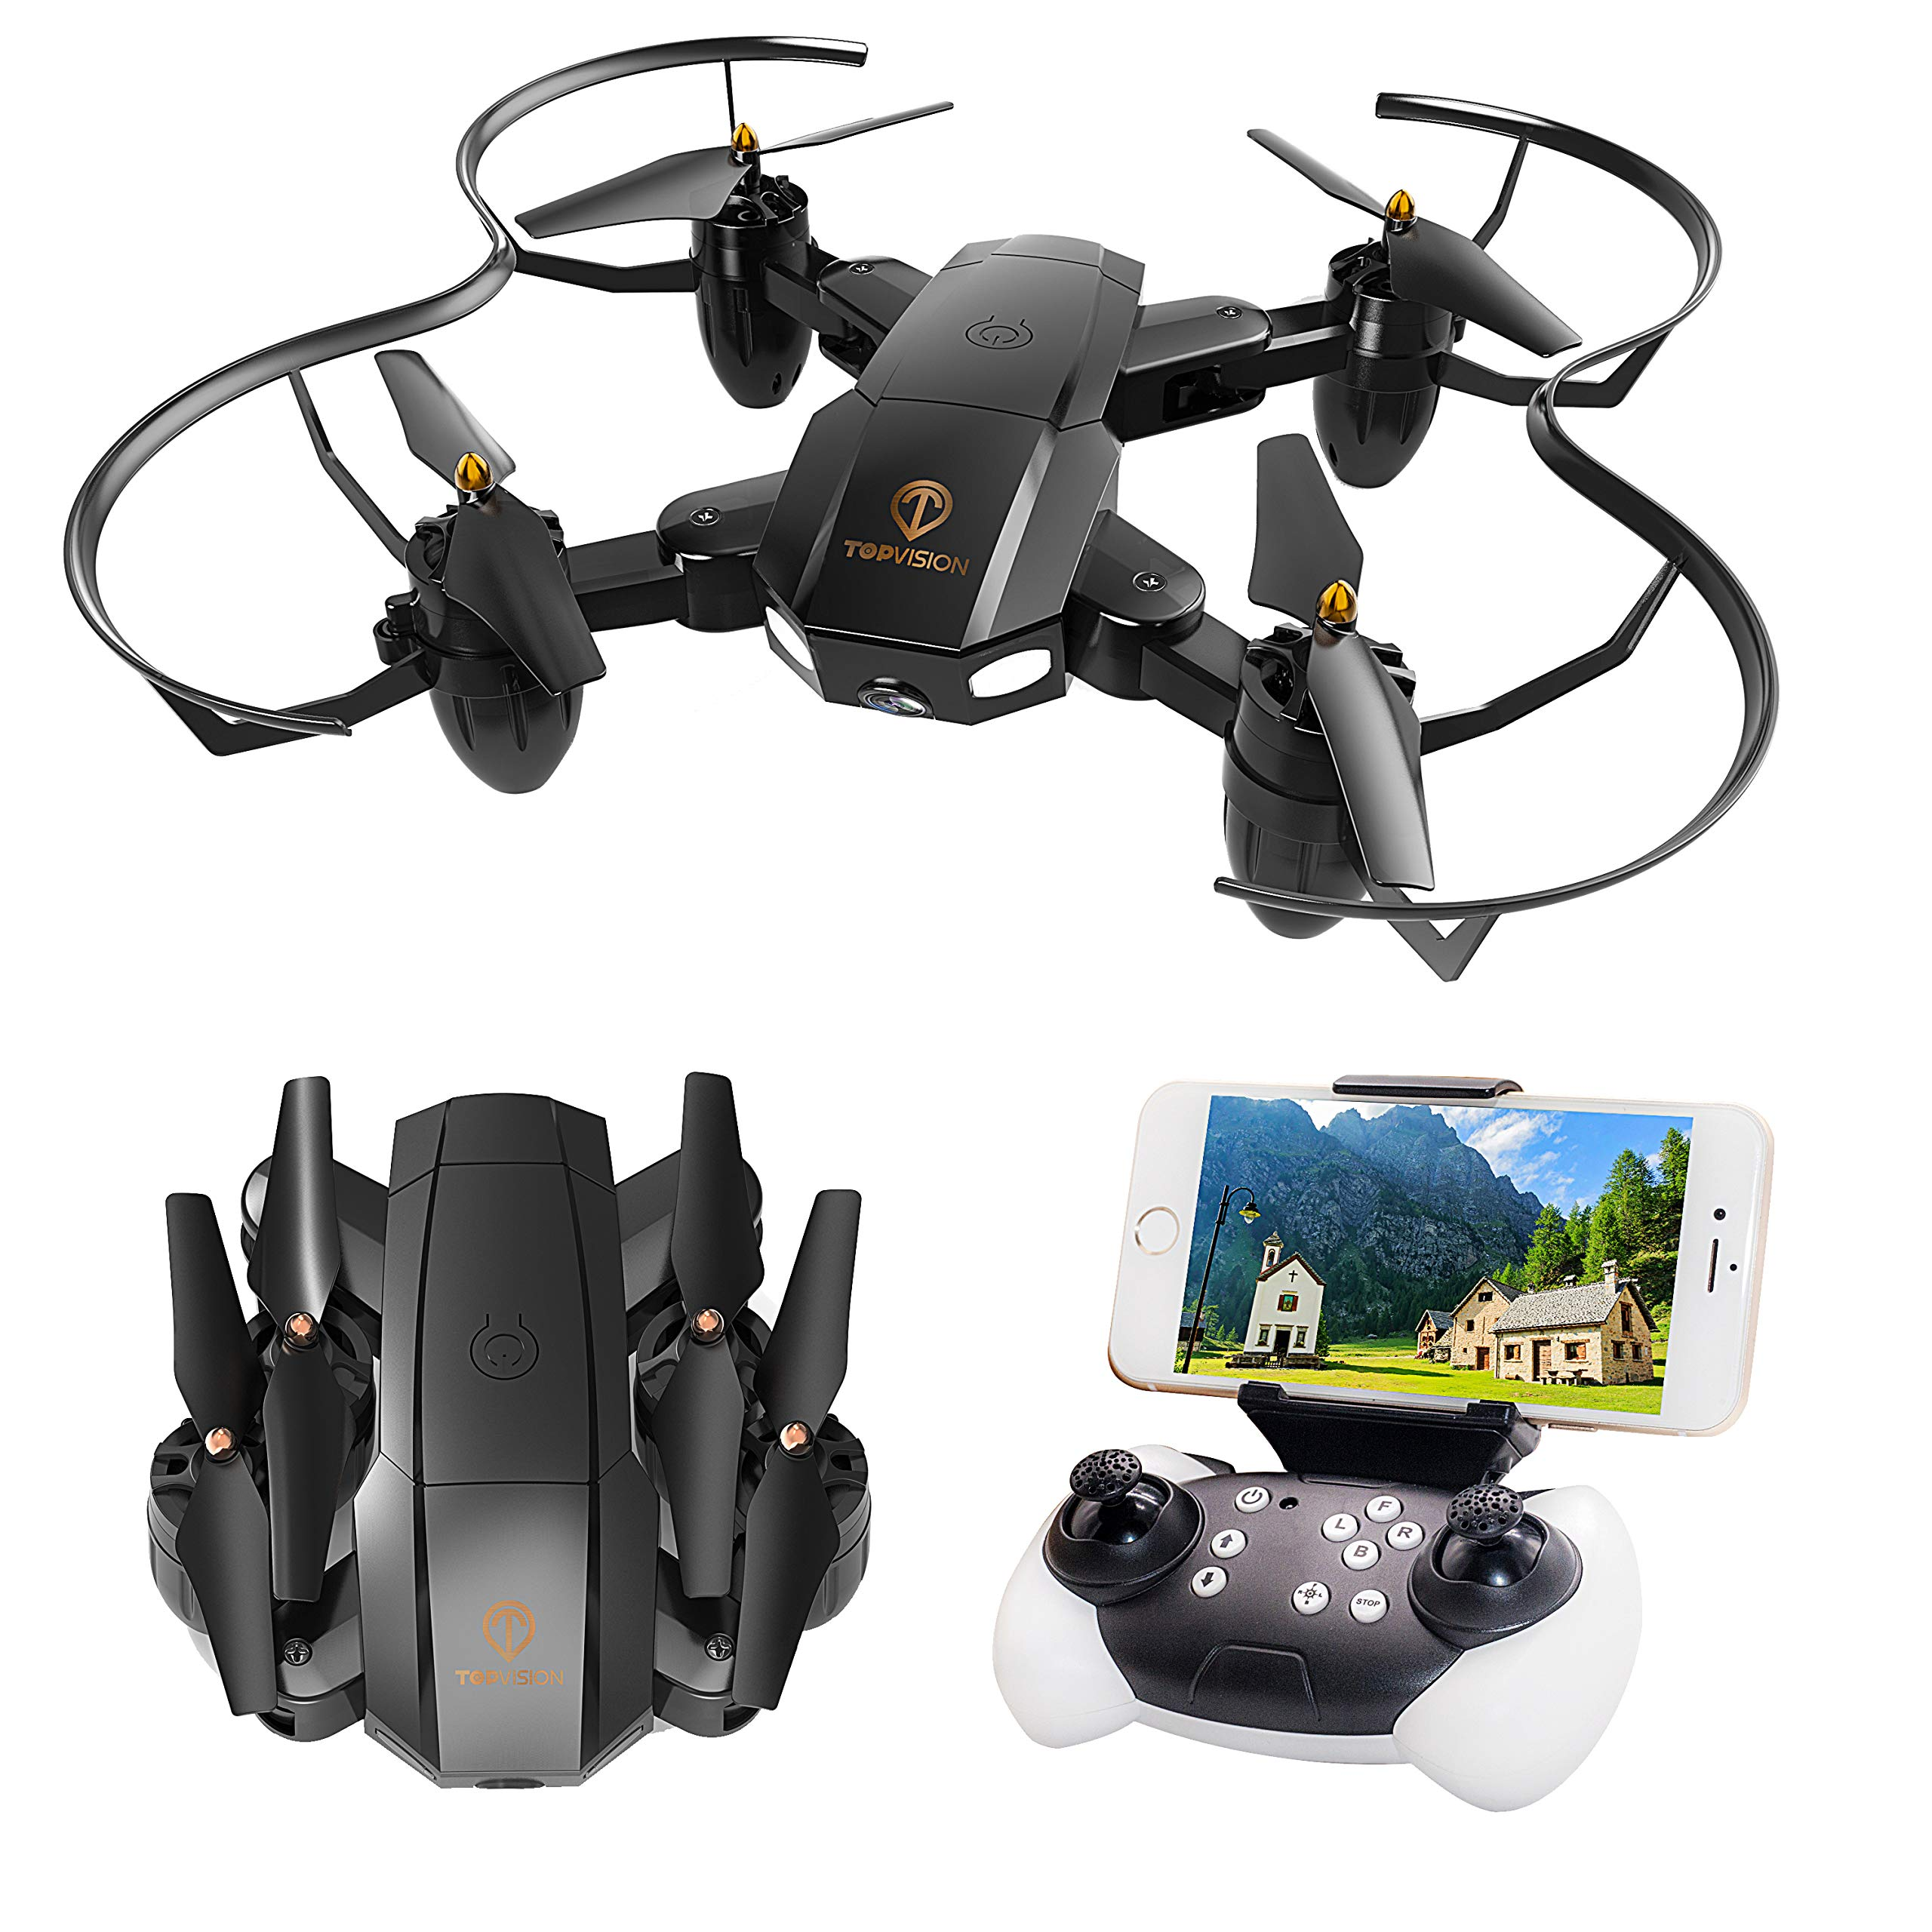 Drone with Camera, TOPVISION Foldable Quadcopter RC Drone with WiFi FPV HD Camera Live Video, Altitude Hold, One Key Start, APP Control, Black by T TOPVISION (Image #2)